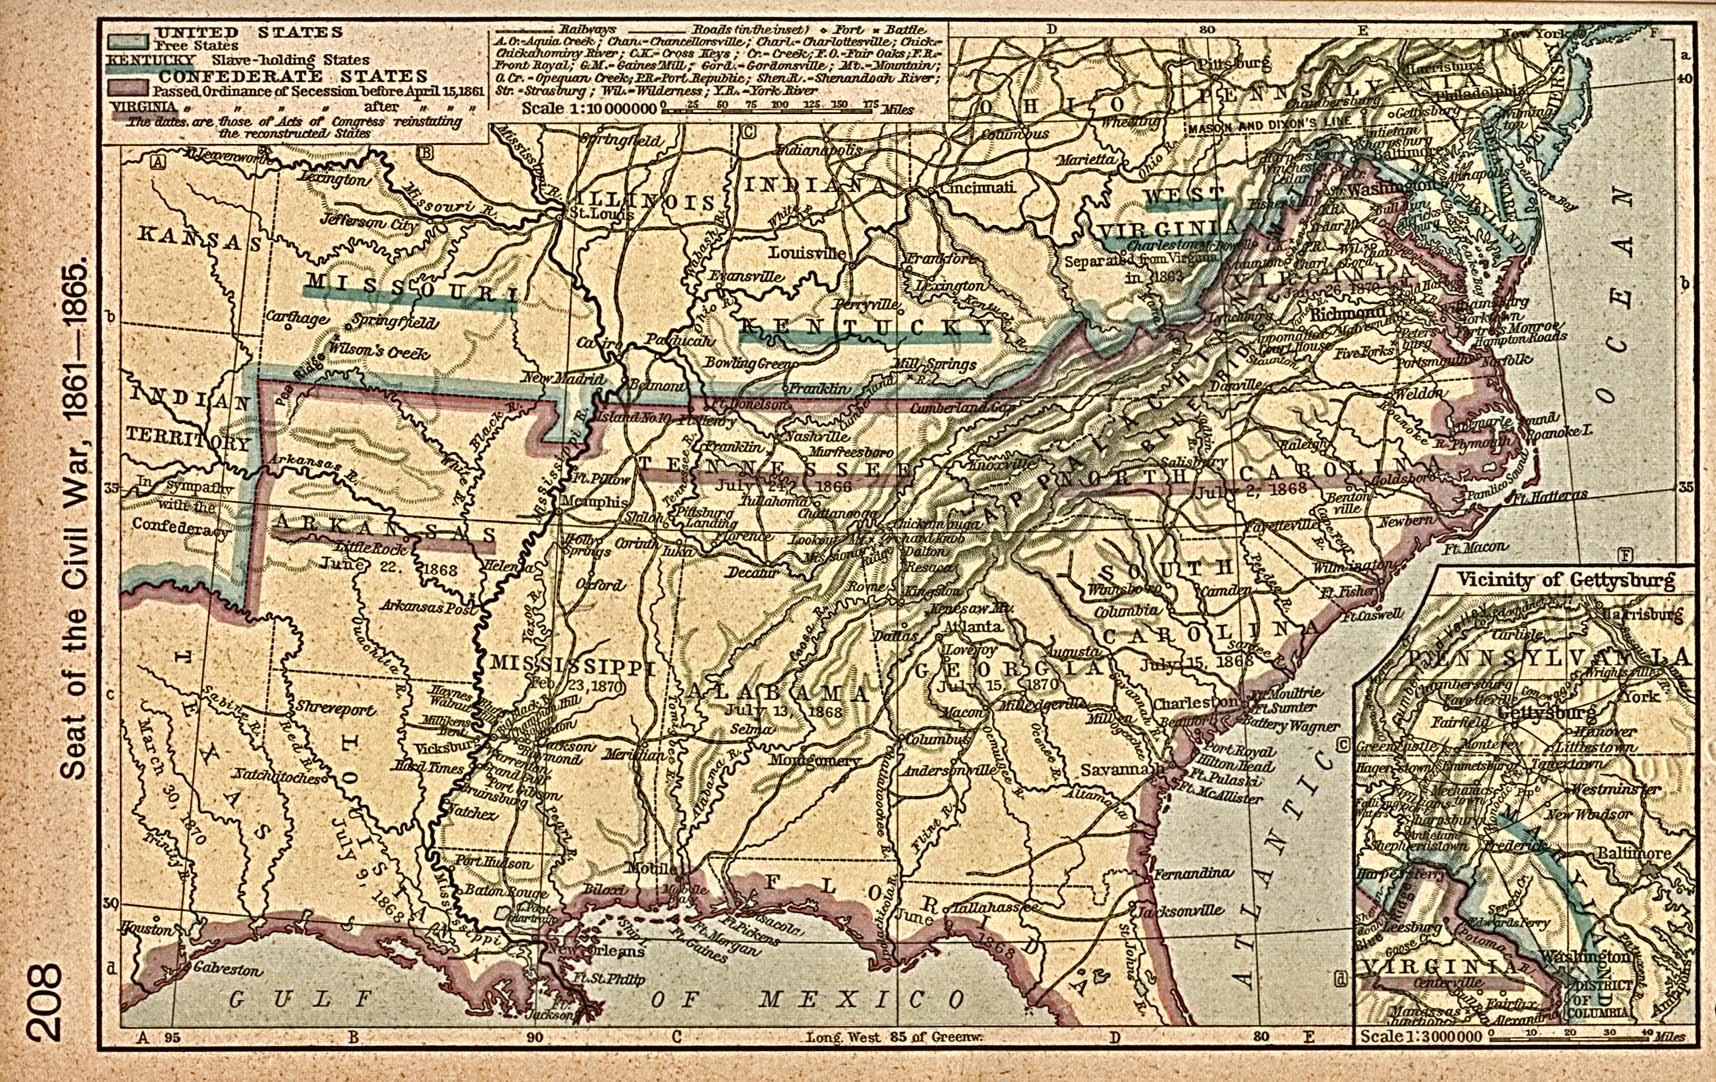 Map of of the Seat of the American Civil War 1861 - 1865 - mapa.owje.com